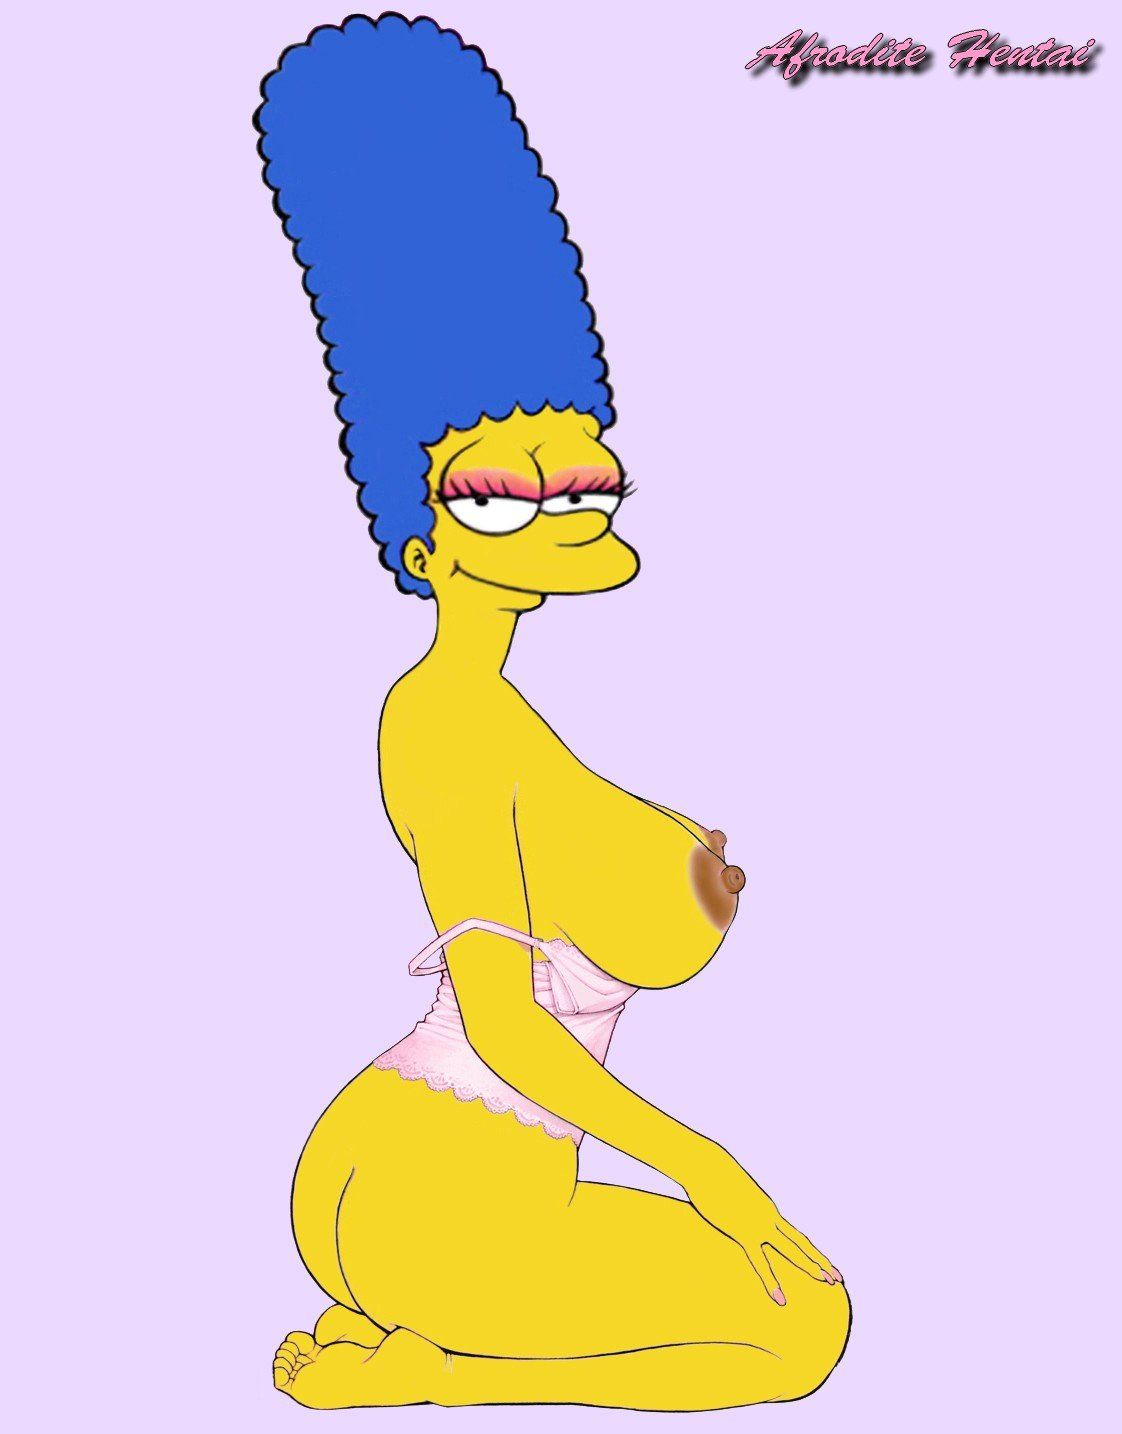 marge en el video de comics eroticos 7 de Marge en el video de Comics Eroticos